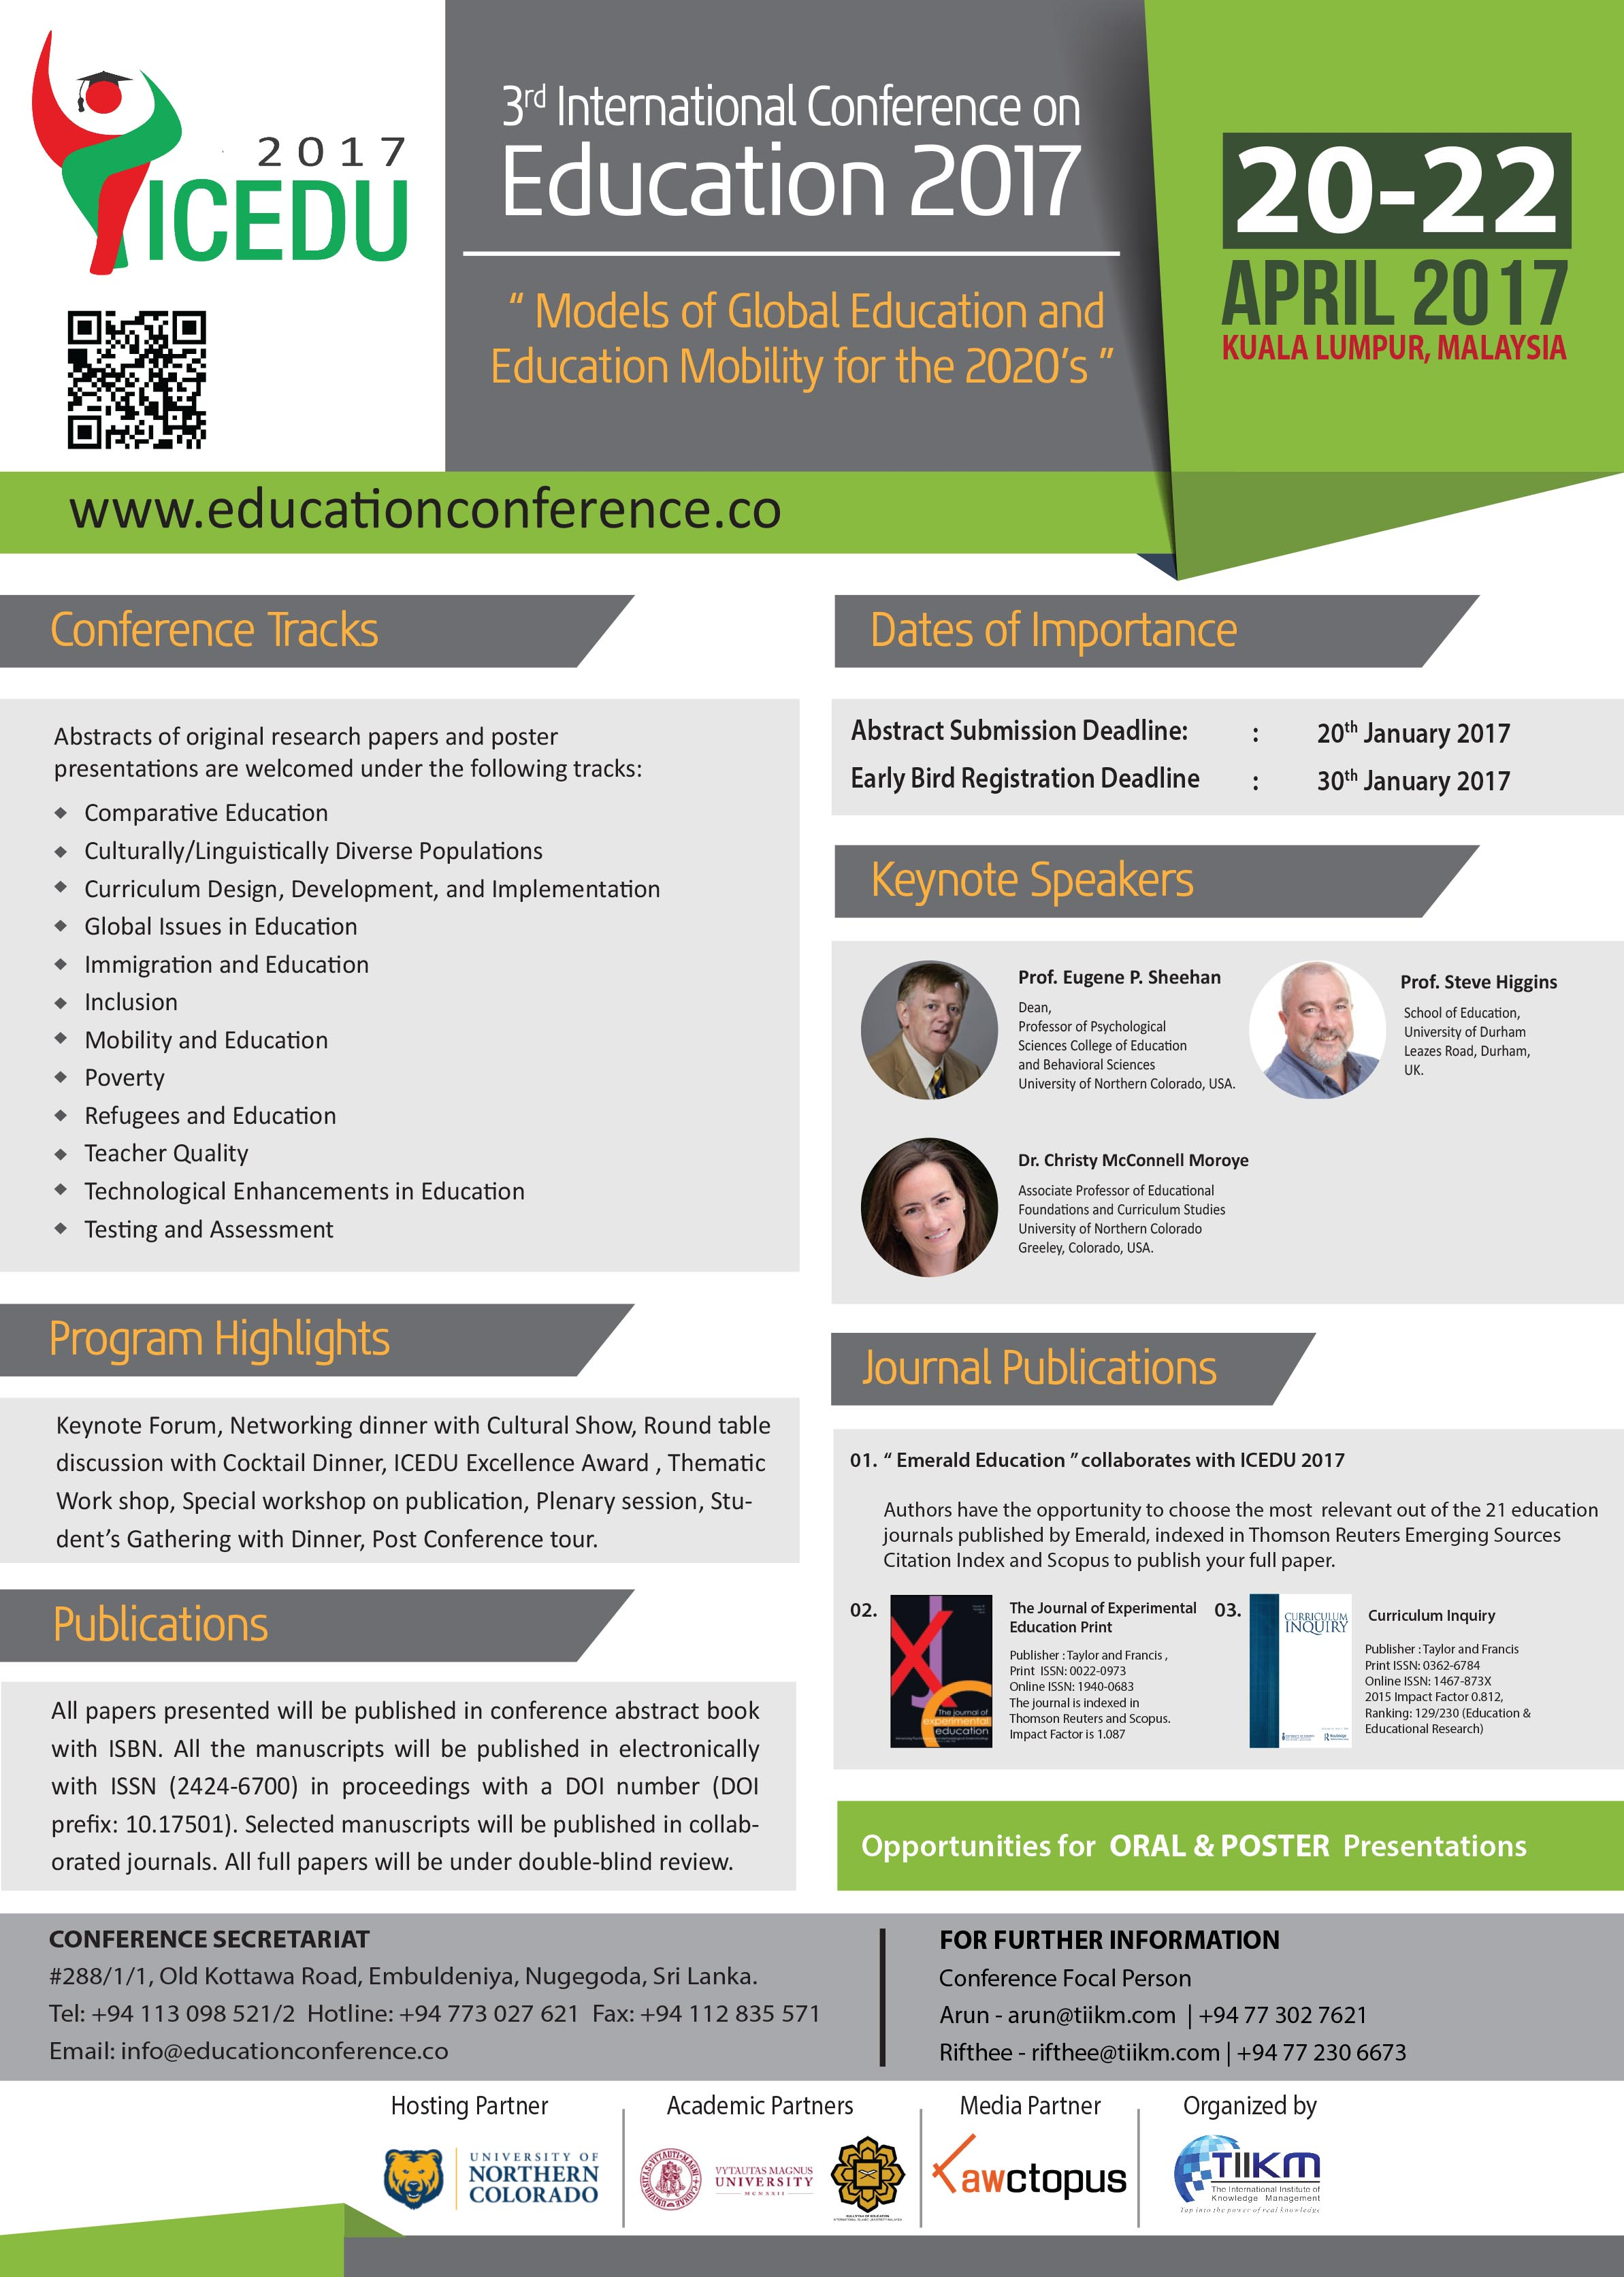 Call for Papers: 3rd International Conference on Education ICEDU 2017